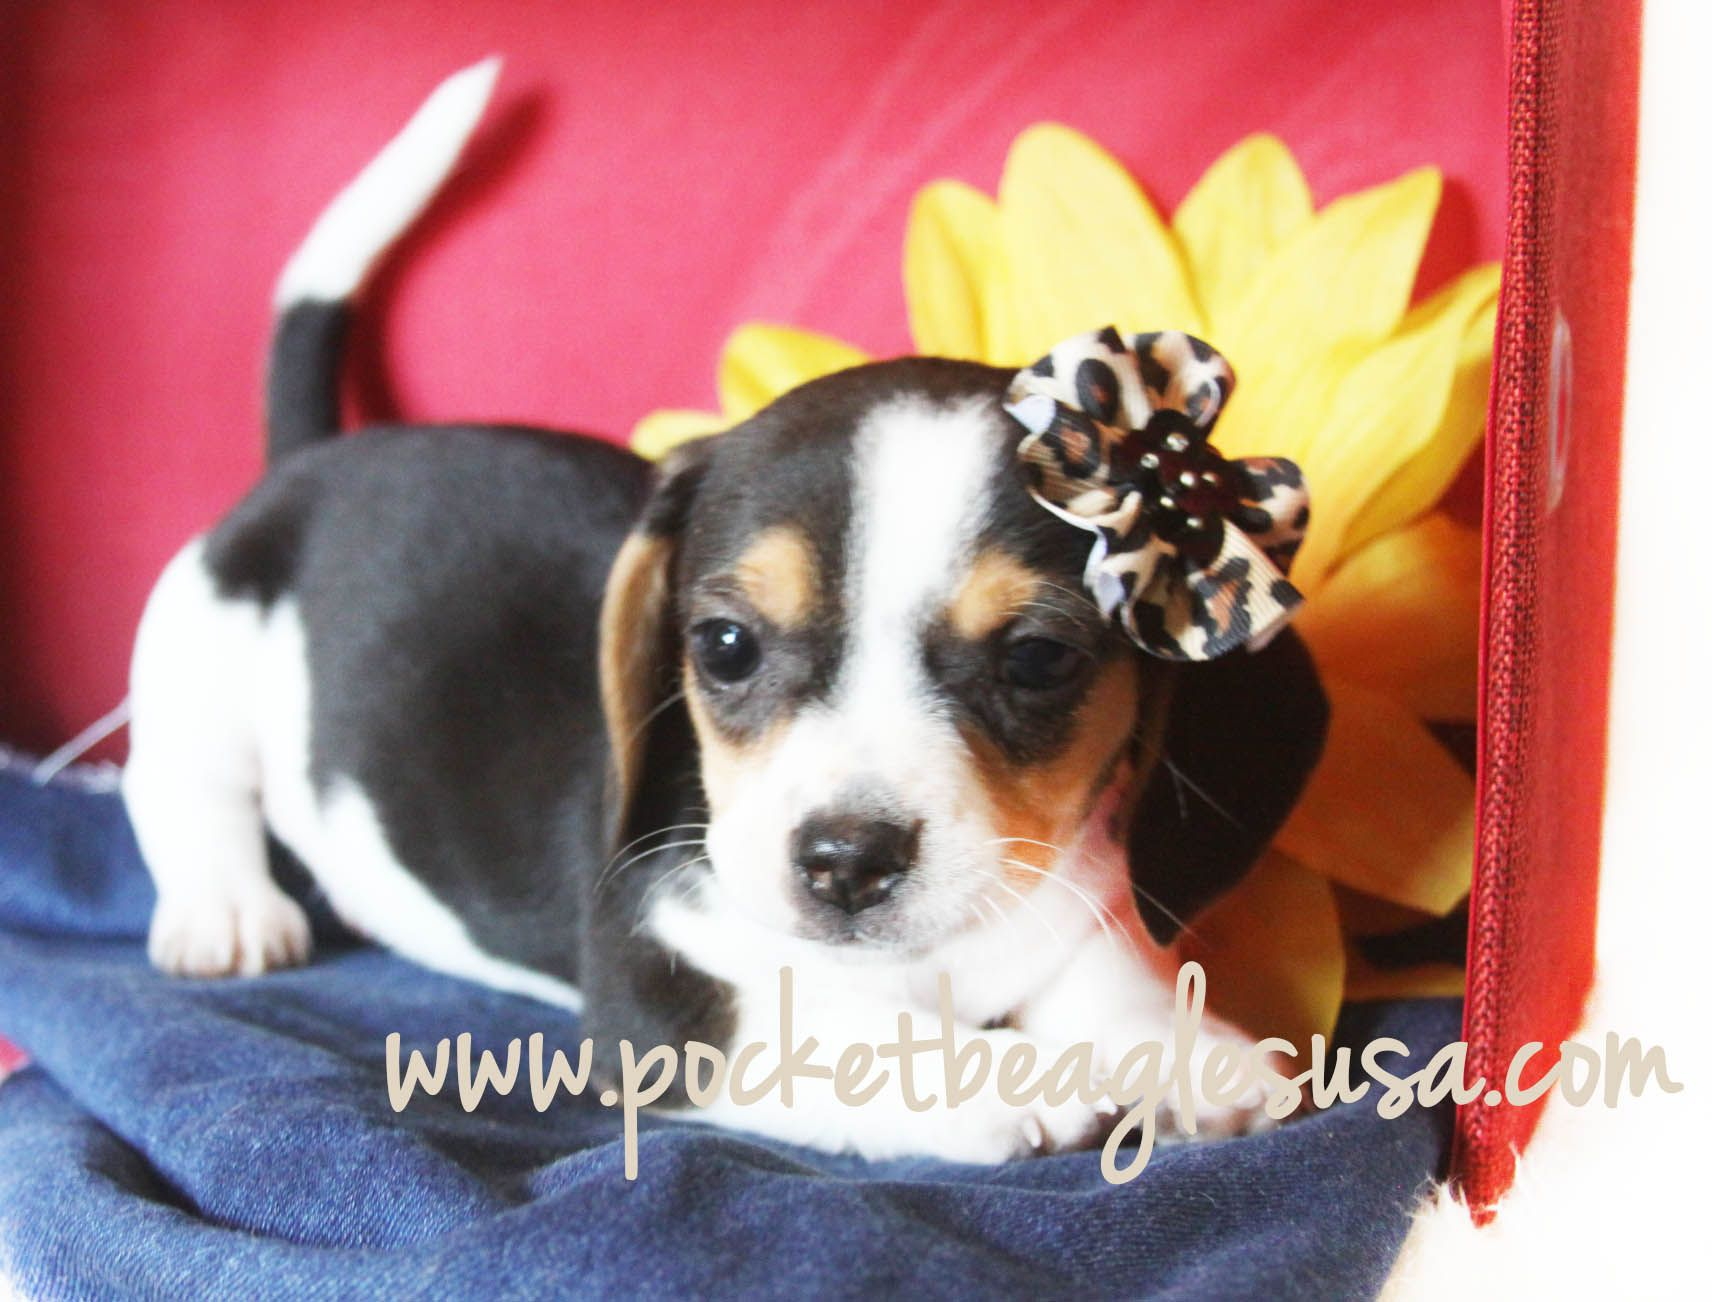 Www Pocketbeagles Small Pocket Size Beagles Tiny Beagles Beagles Cute Puppy Texas Puppy Pocket Beagle Puppies Beagle Puppy Pocket Beagle